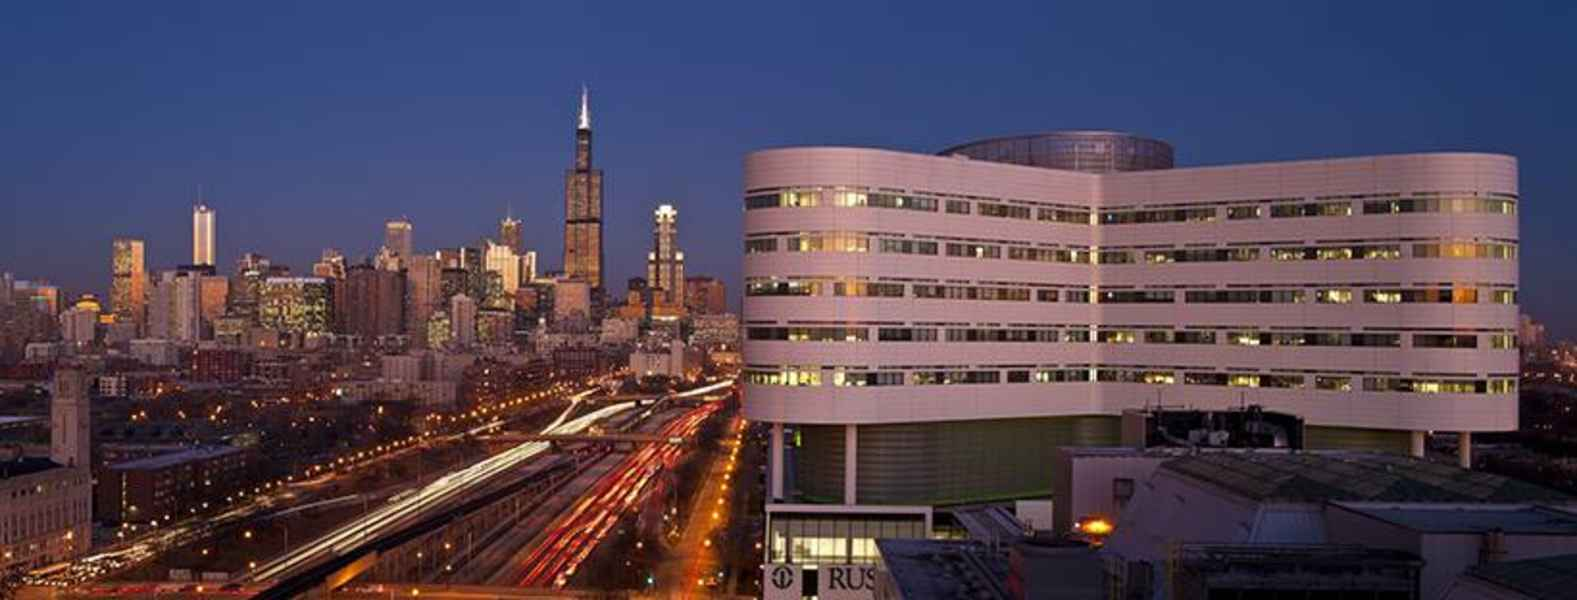 Rush University Medical Centre Chicago